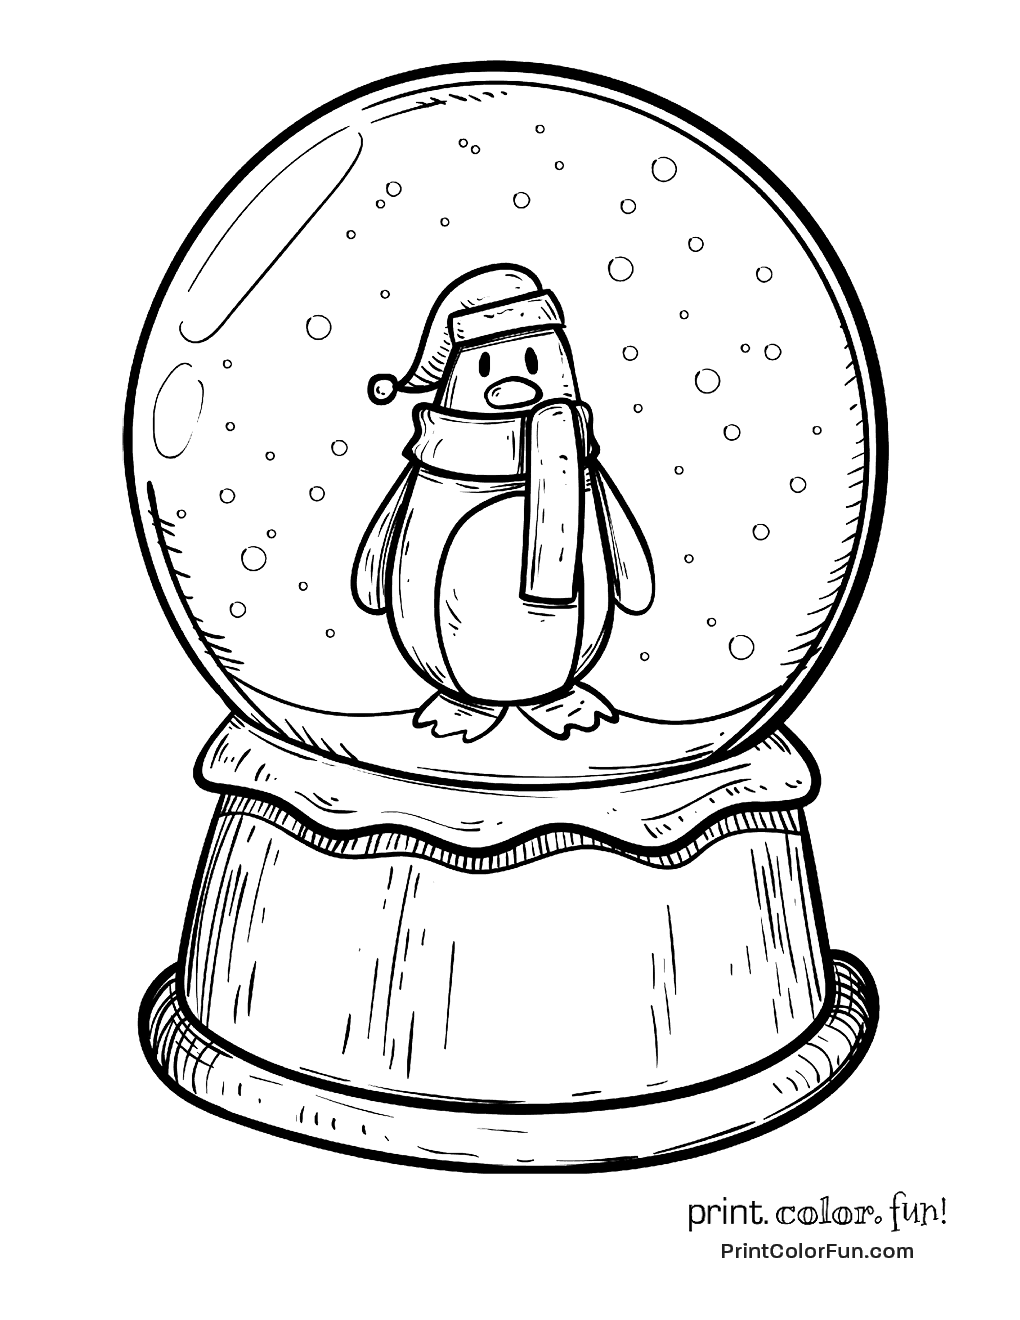 fox snow globe coloring pages - photo#5